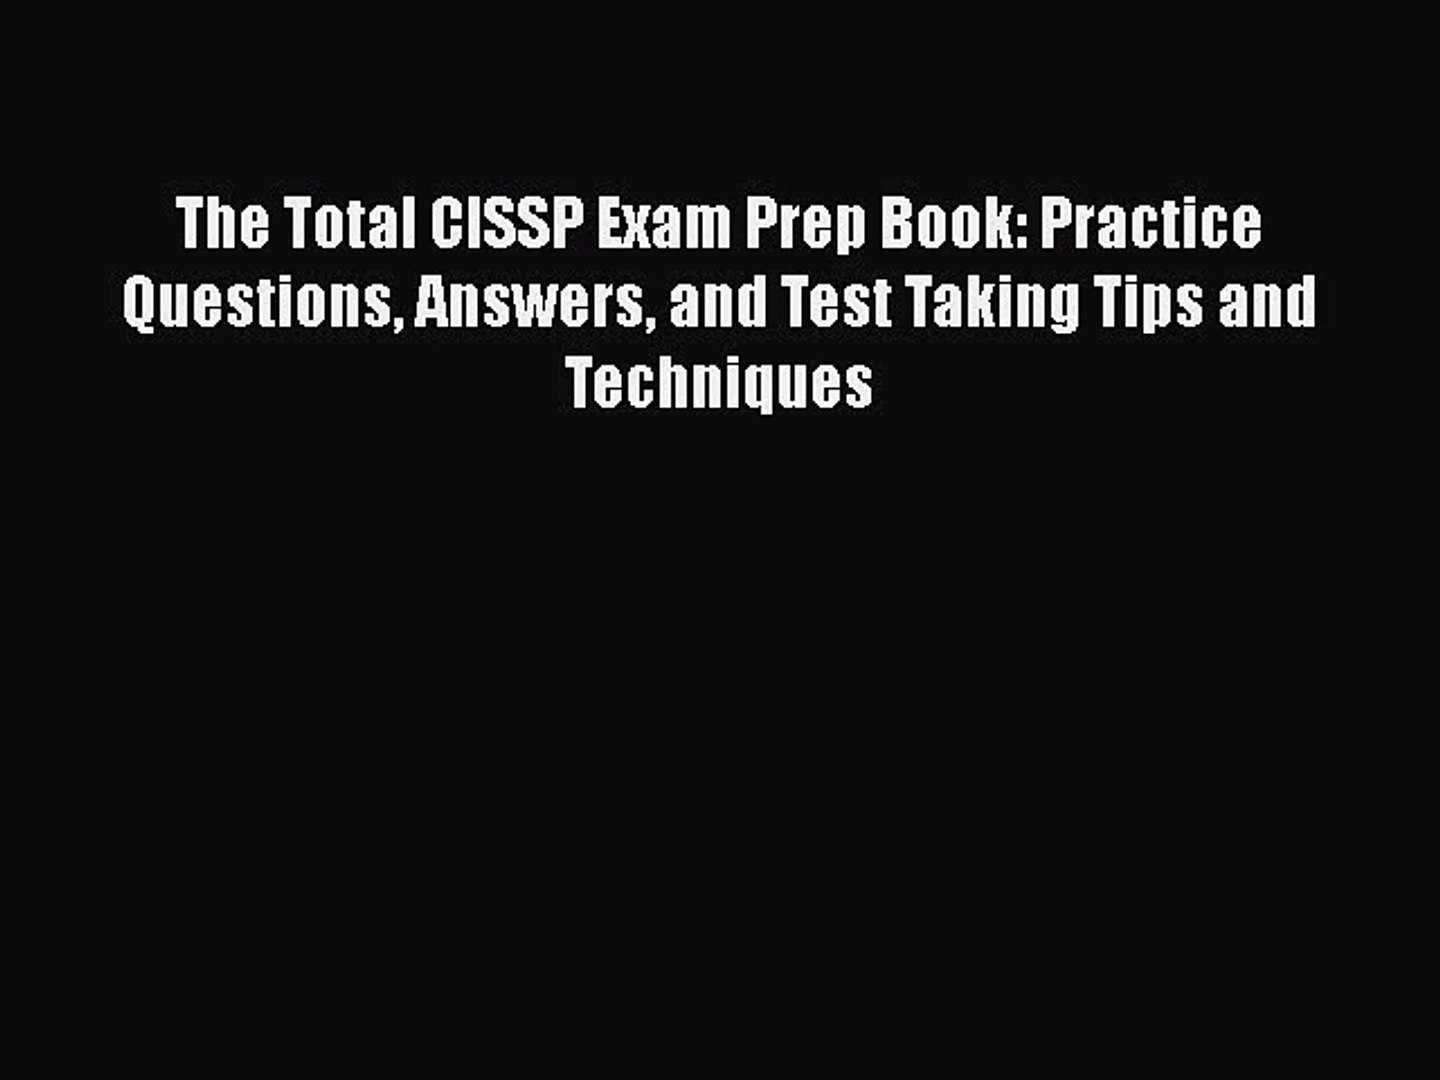 [PDF] The Total CISSP Exam Prep Book: Practice Questions Answers and Test Taking Tips and Techniques